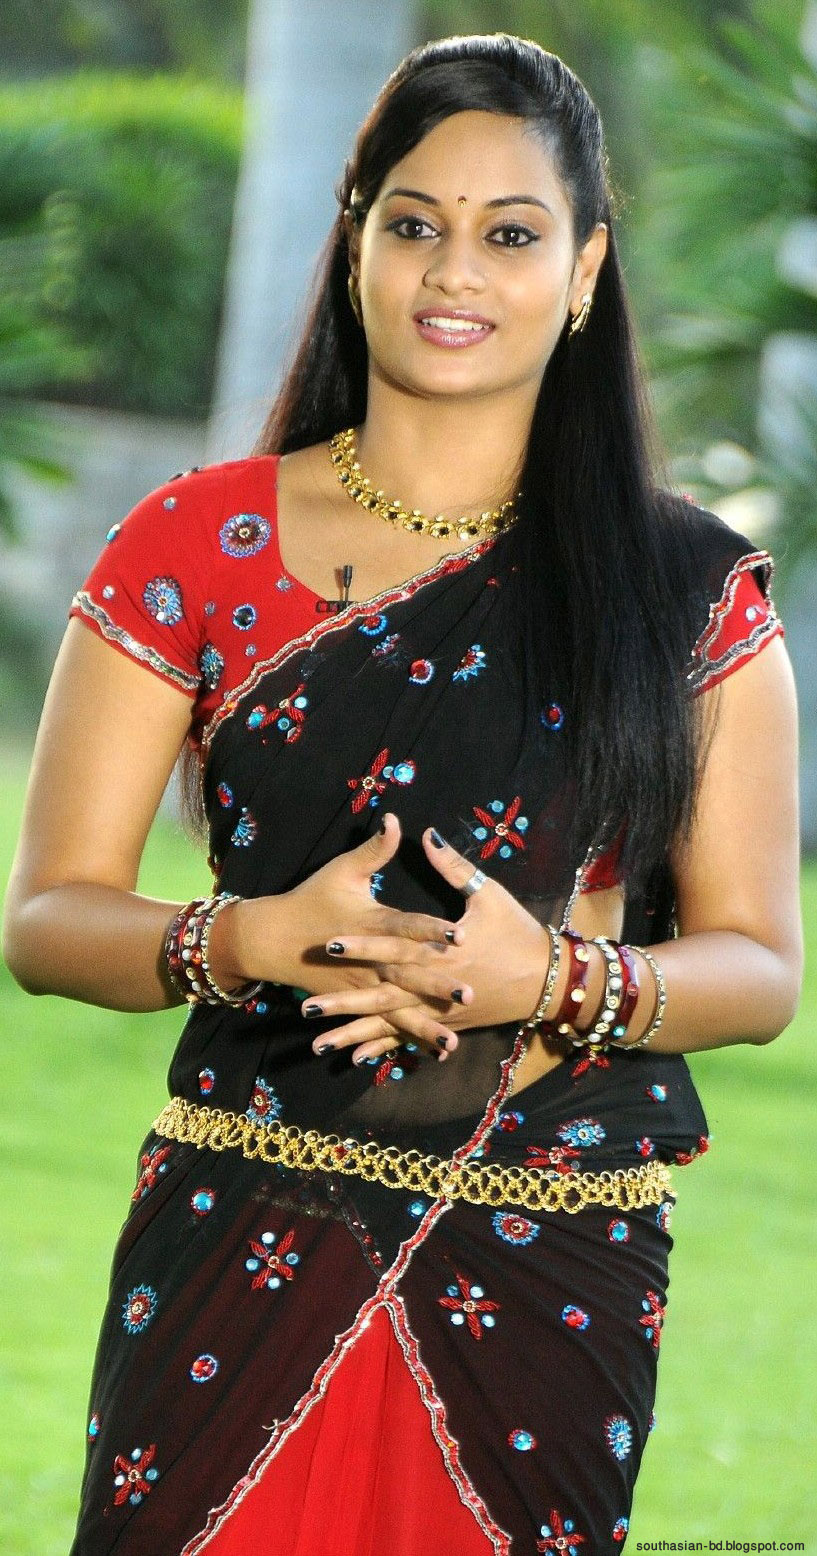 Cute Tamil Actress Wallpapers.